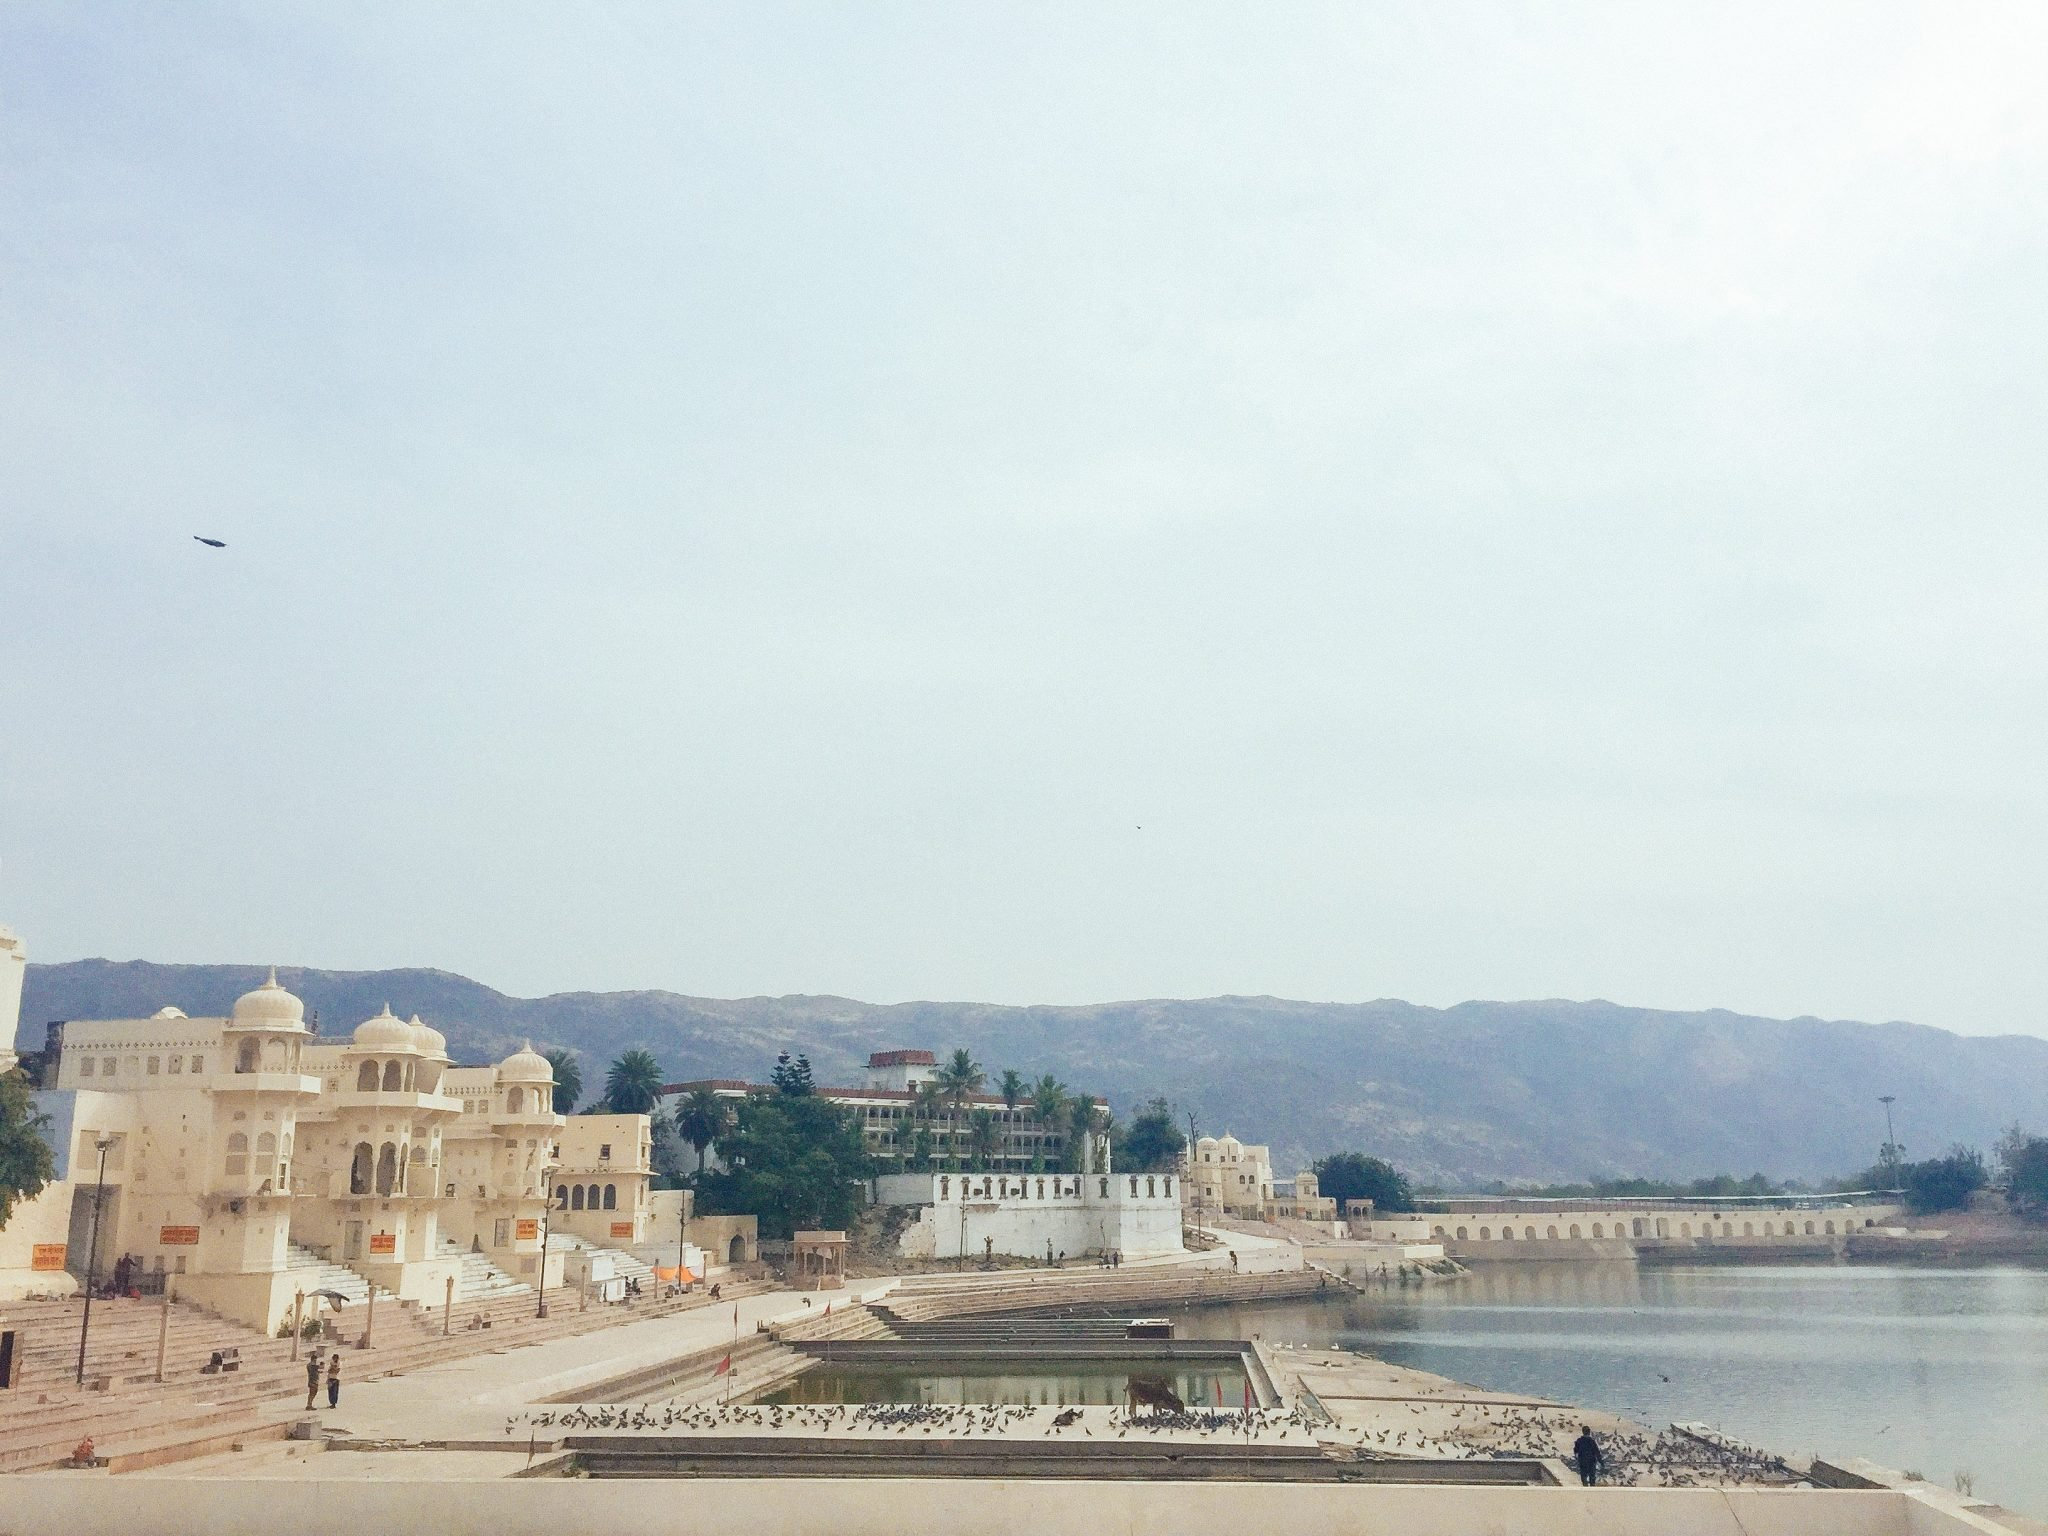 Pushkar Lake, Rajasthan Itinerary | Trips in India